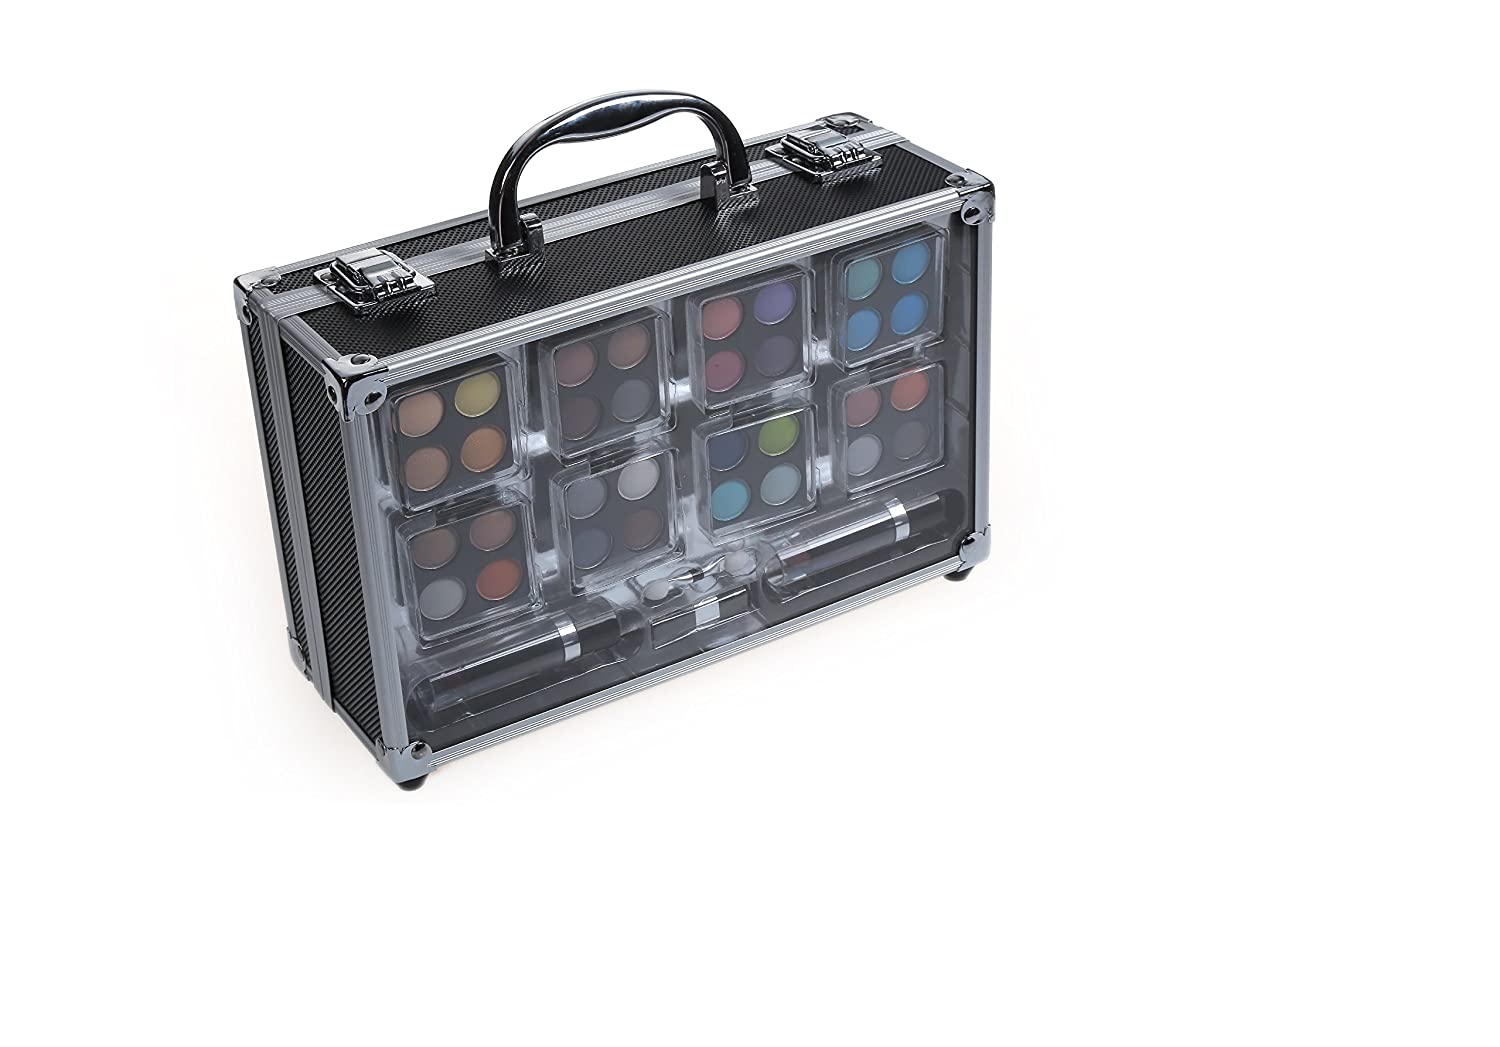 Cameo Professional Makeup Set With Reusable Train Case - A Complete 'On The Go' Cosmetics Set Perfect For Beginners Or Professionals